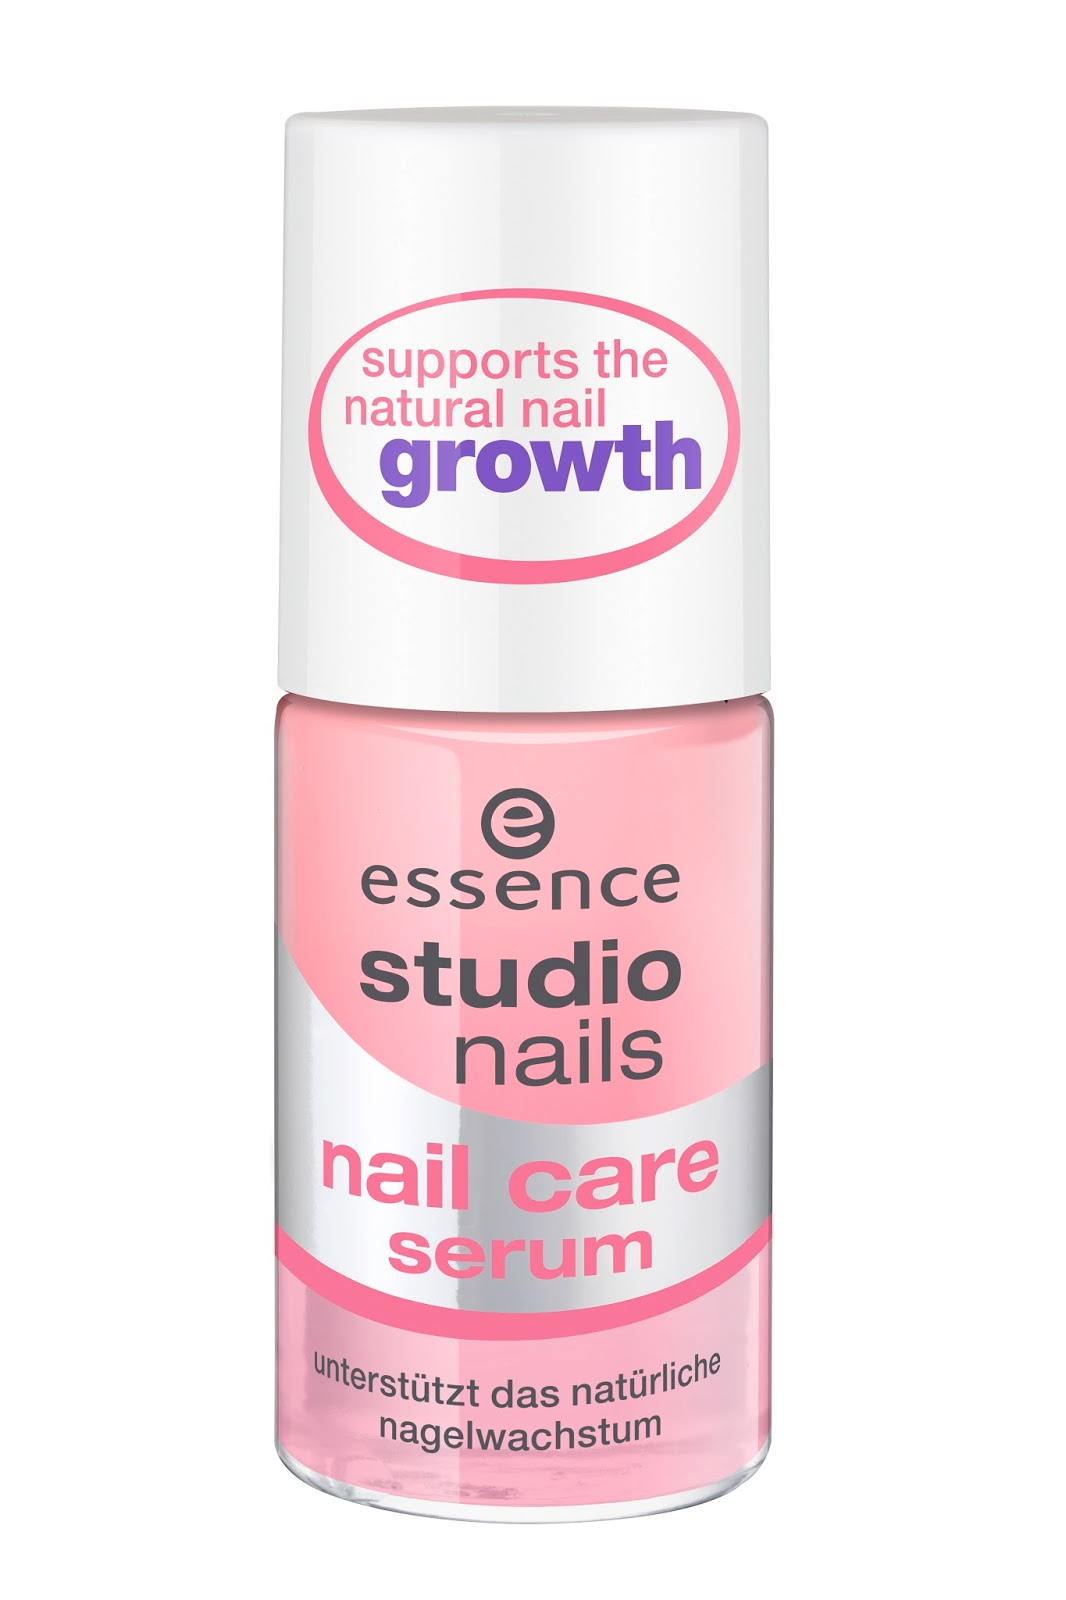 Essence studio nails nail care serum